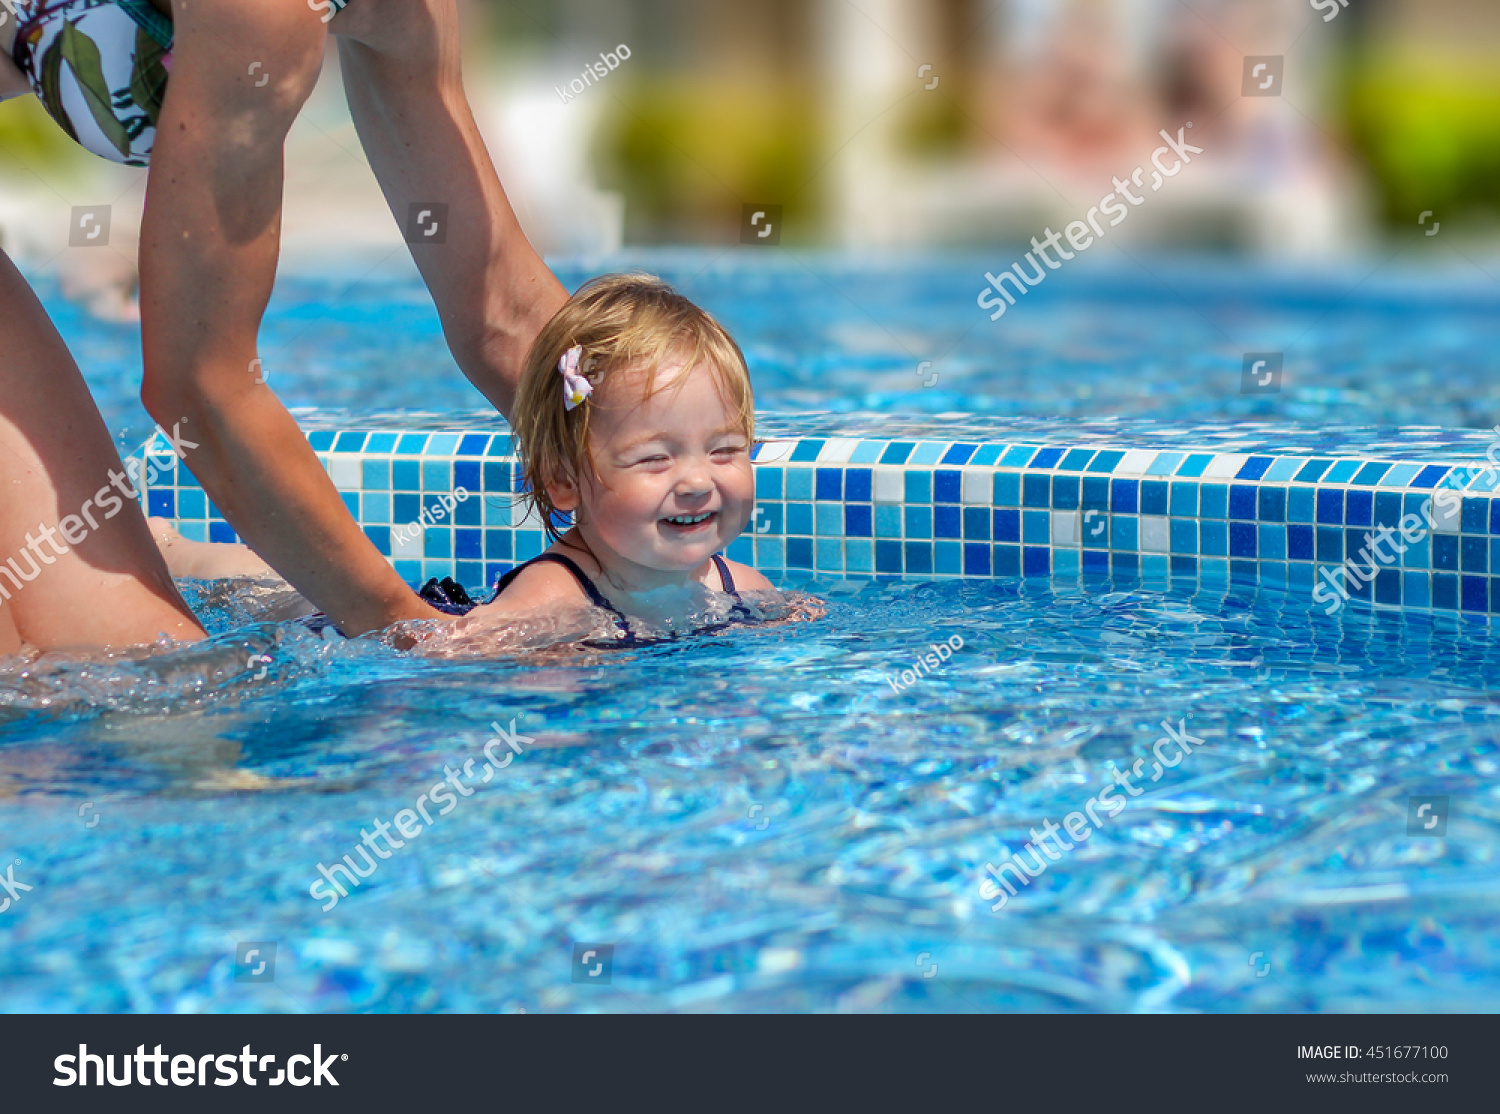 learn how to swim summer holidays